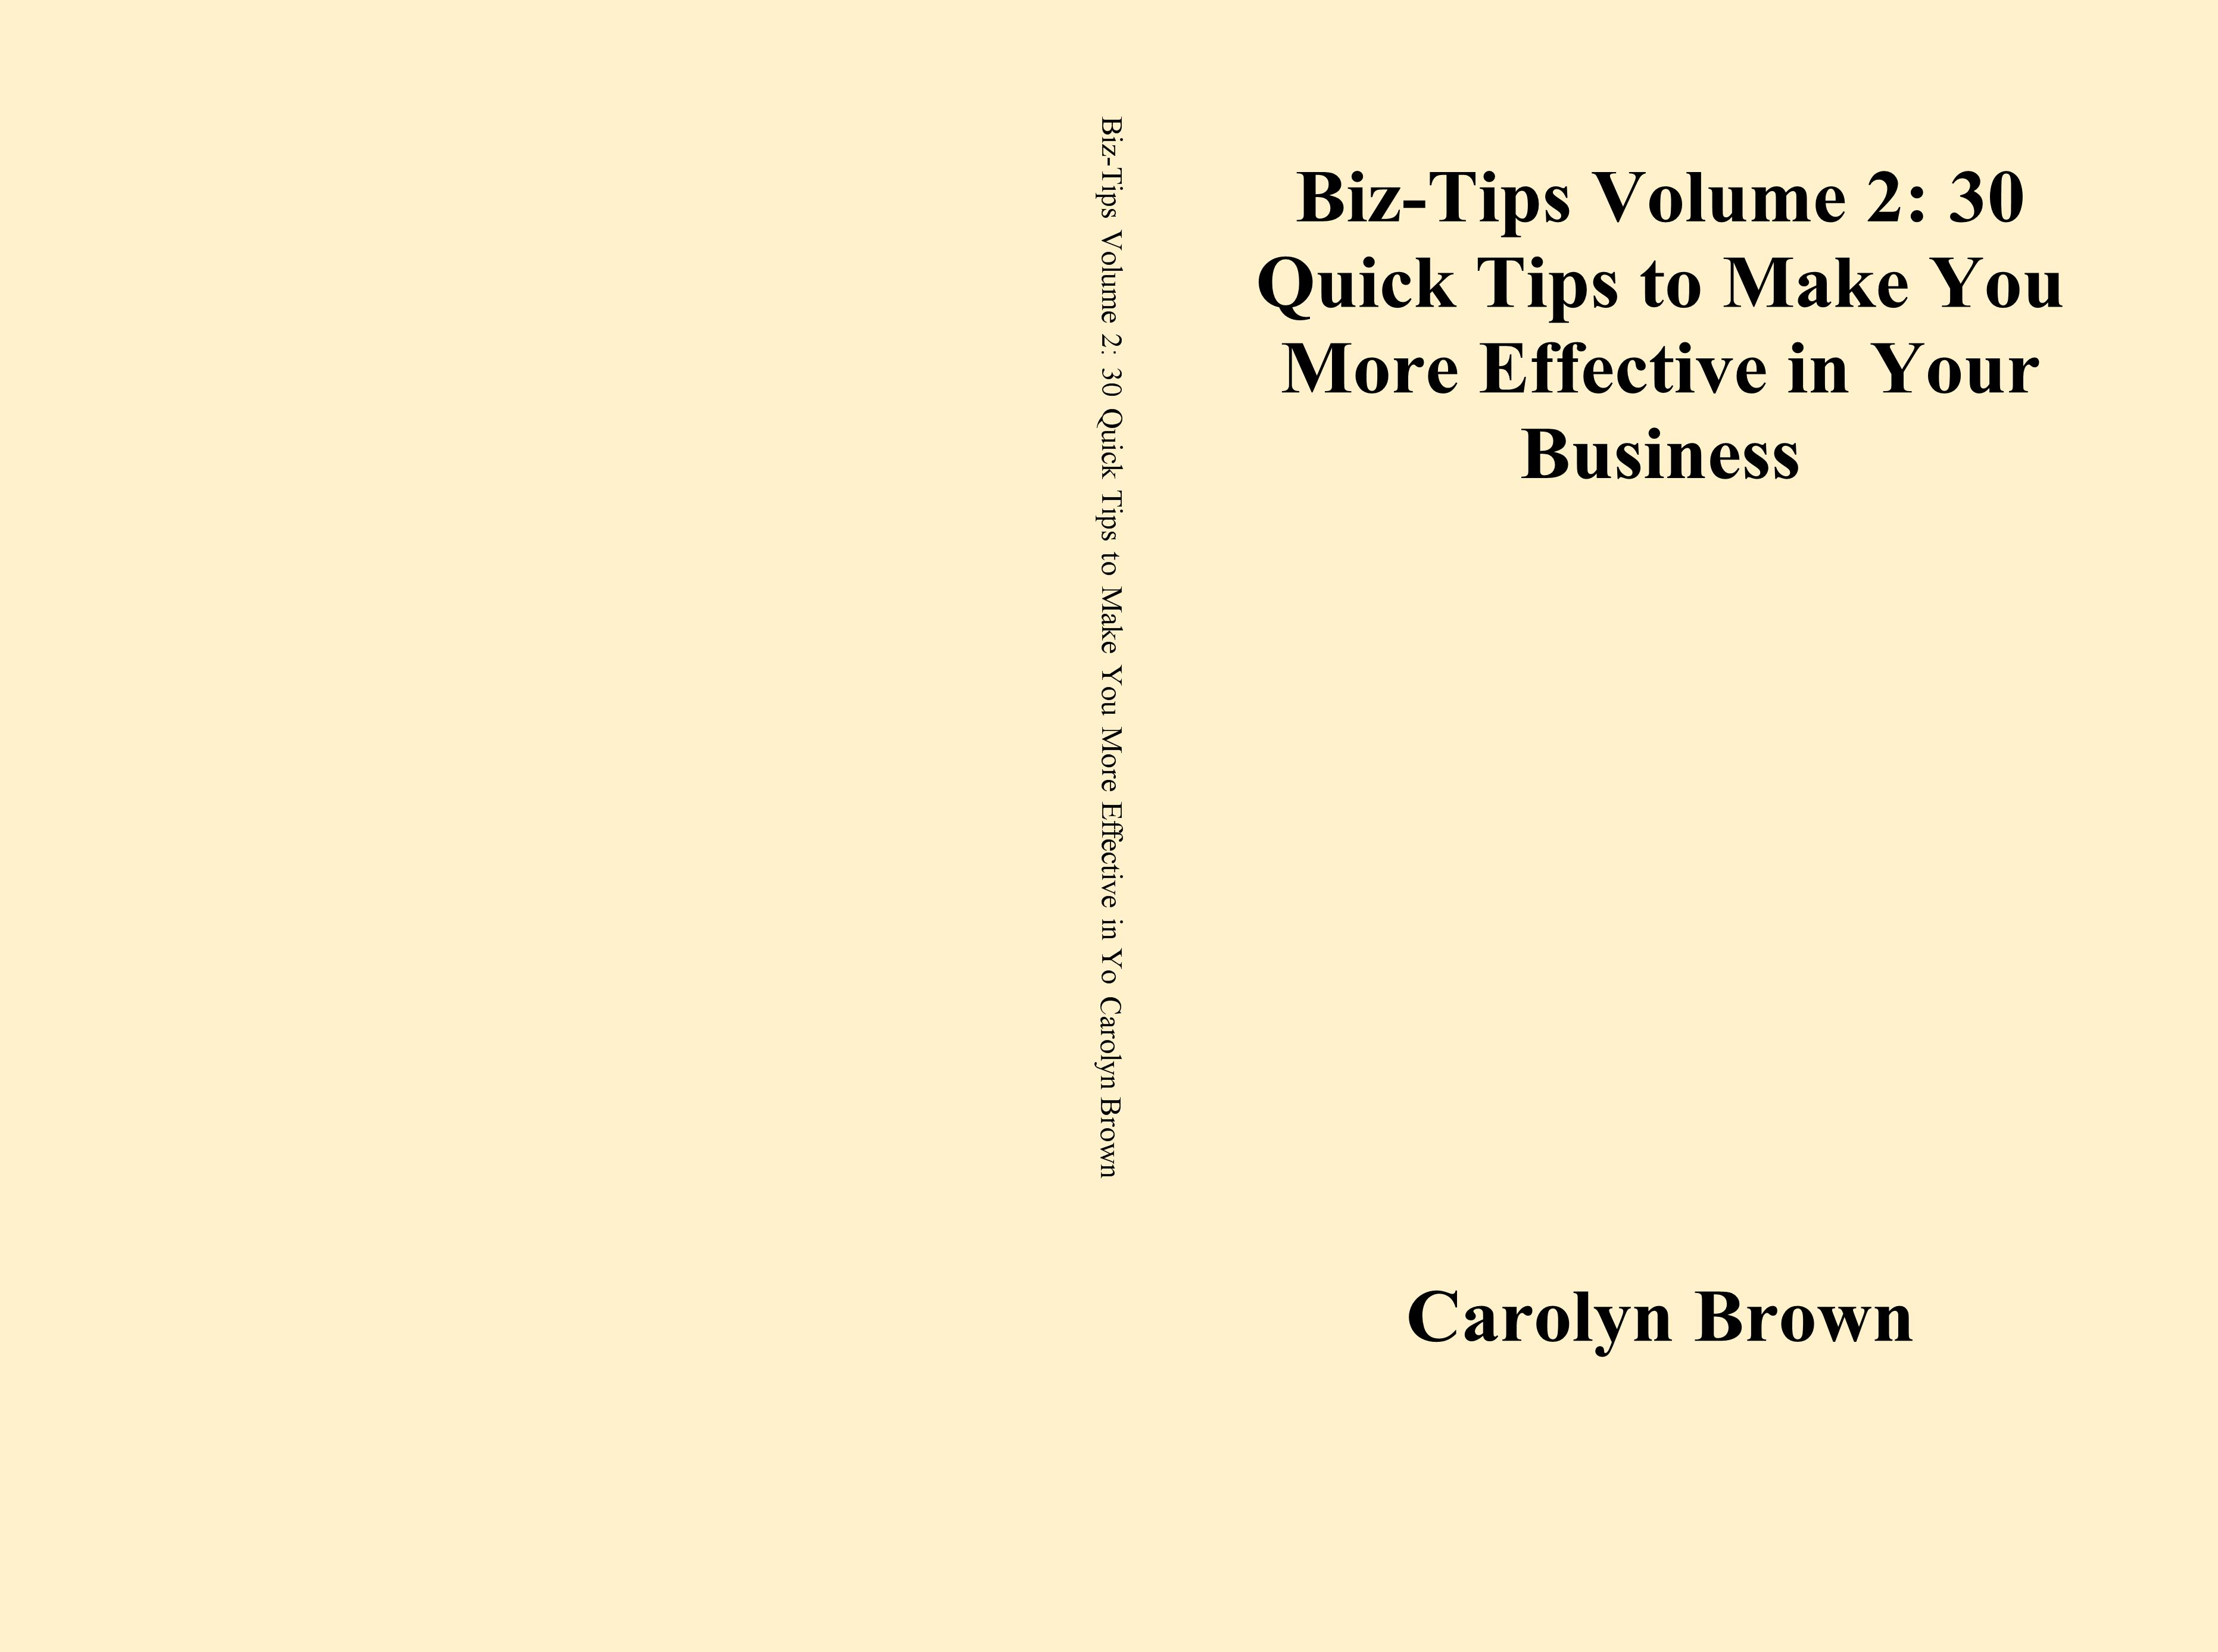 Biz-Tips Volume 2: 30 Quick Tips to Make You More Effective in Your Business cover image